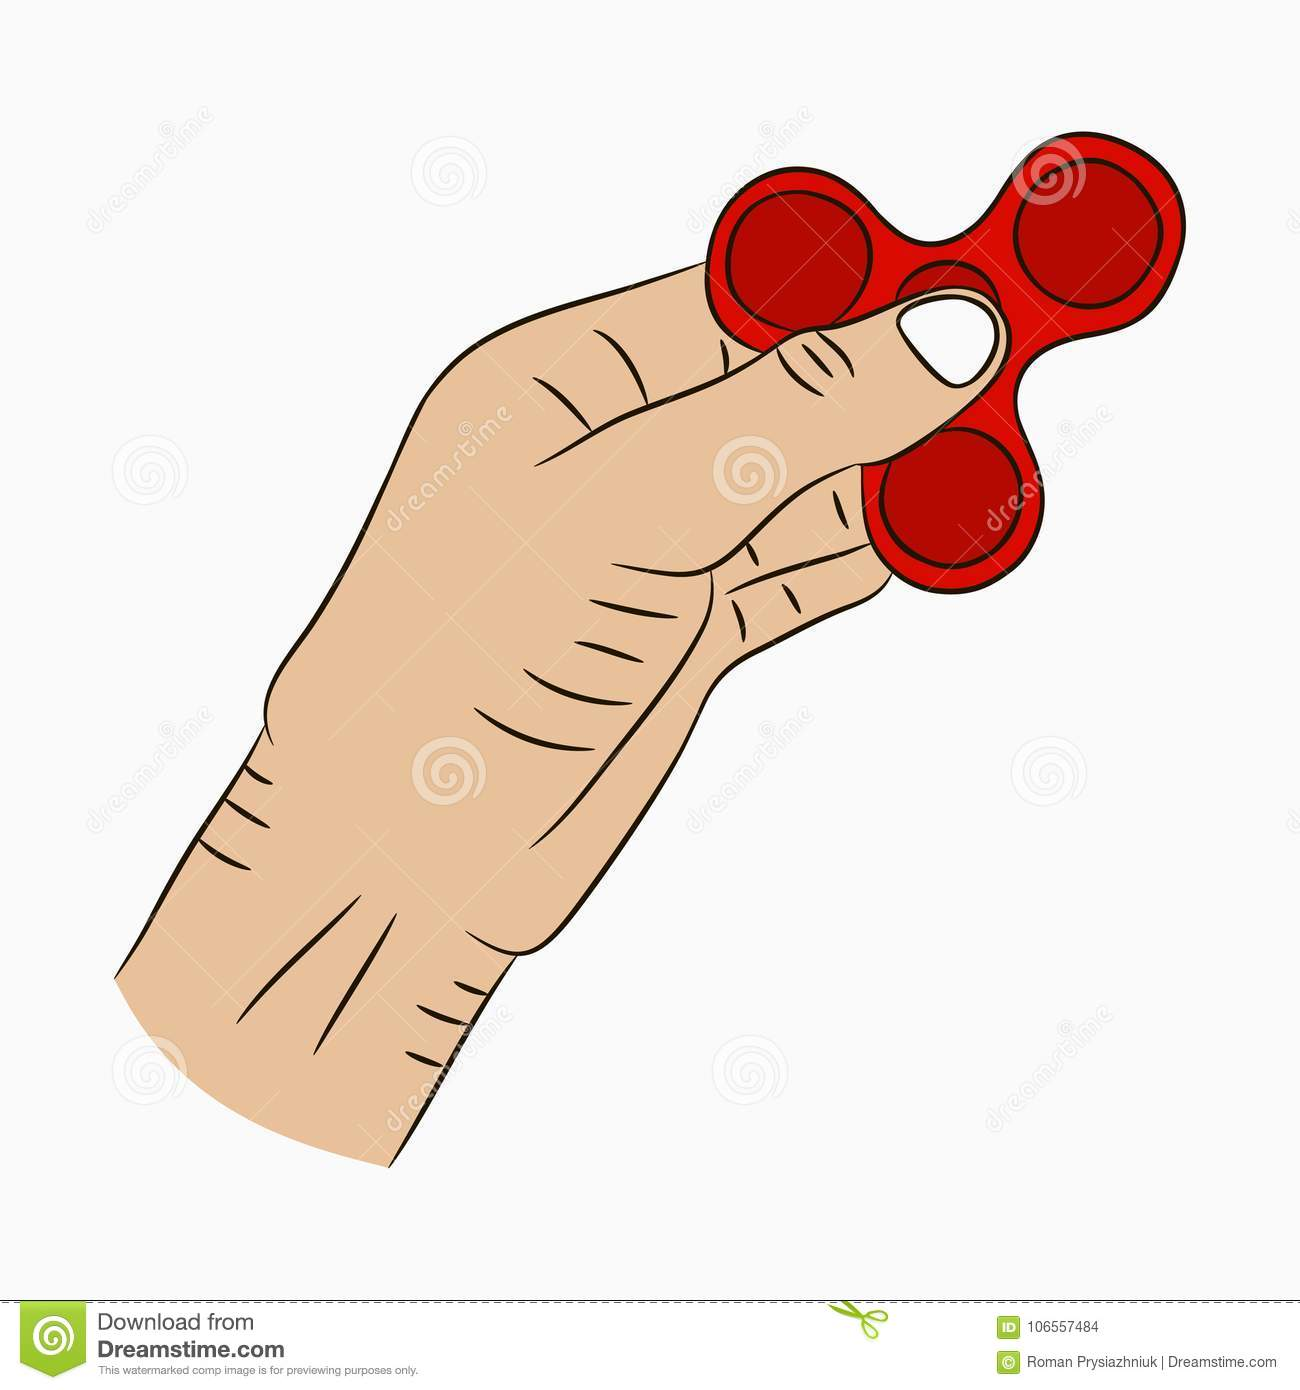 Hand Holding Spinner Drawn Fidget Spinner In Cartoon Style Toy For Increased Focus And Stress Relief Vector Stock Vector Illustration Of Design Increased 106557484